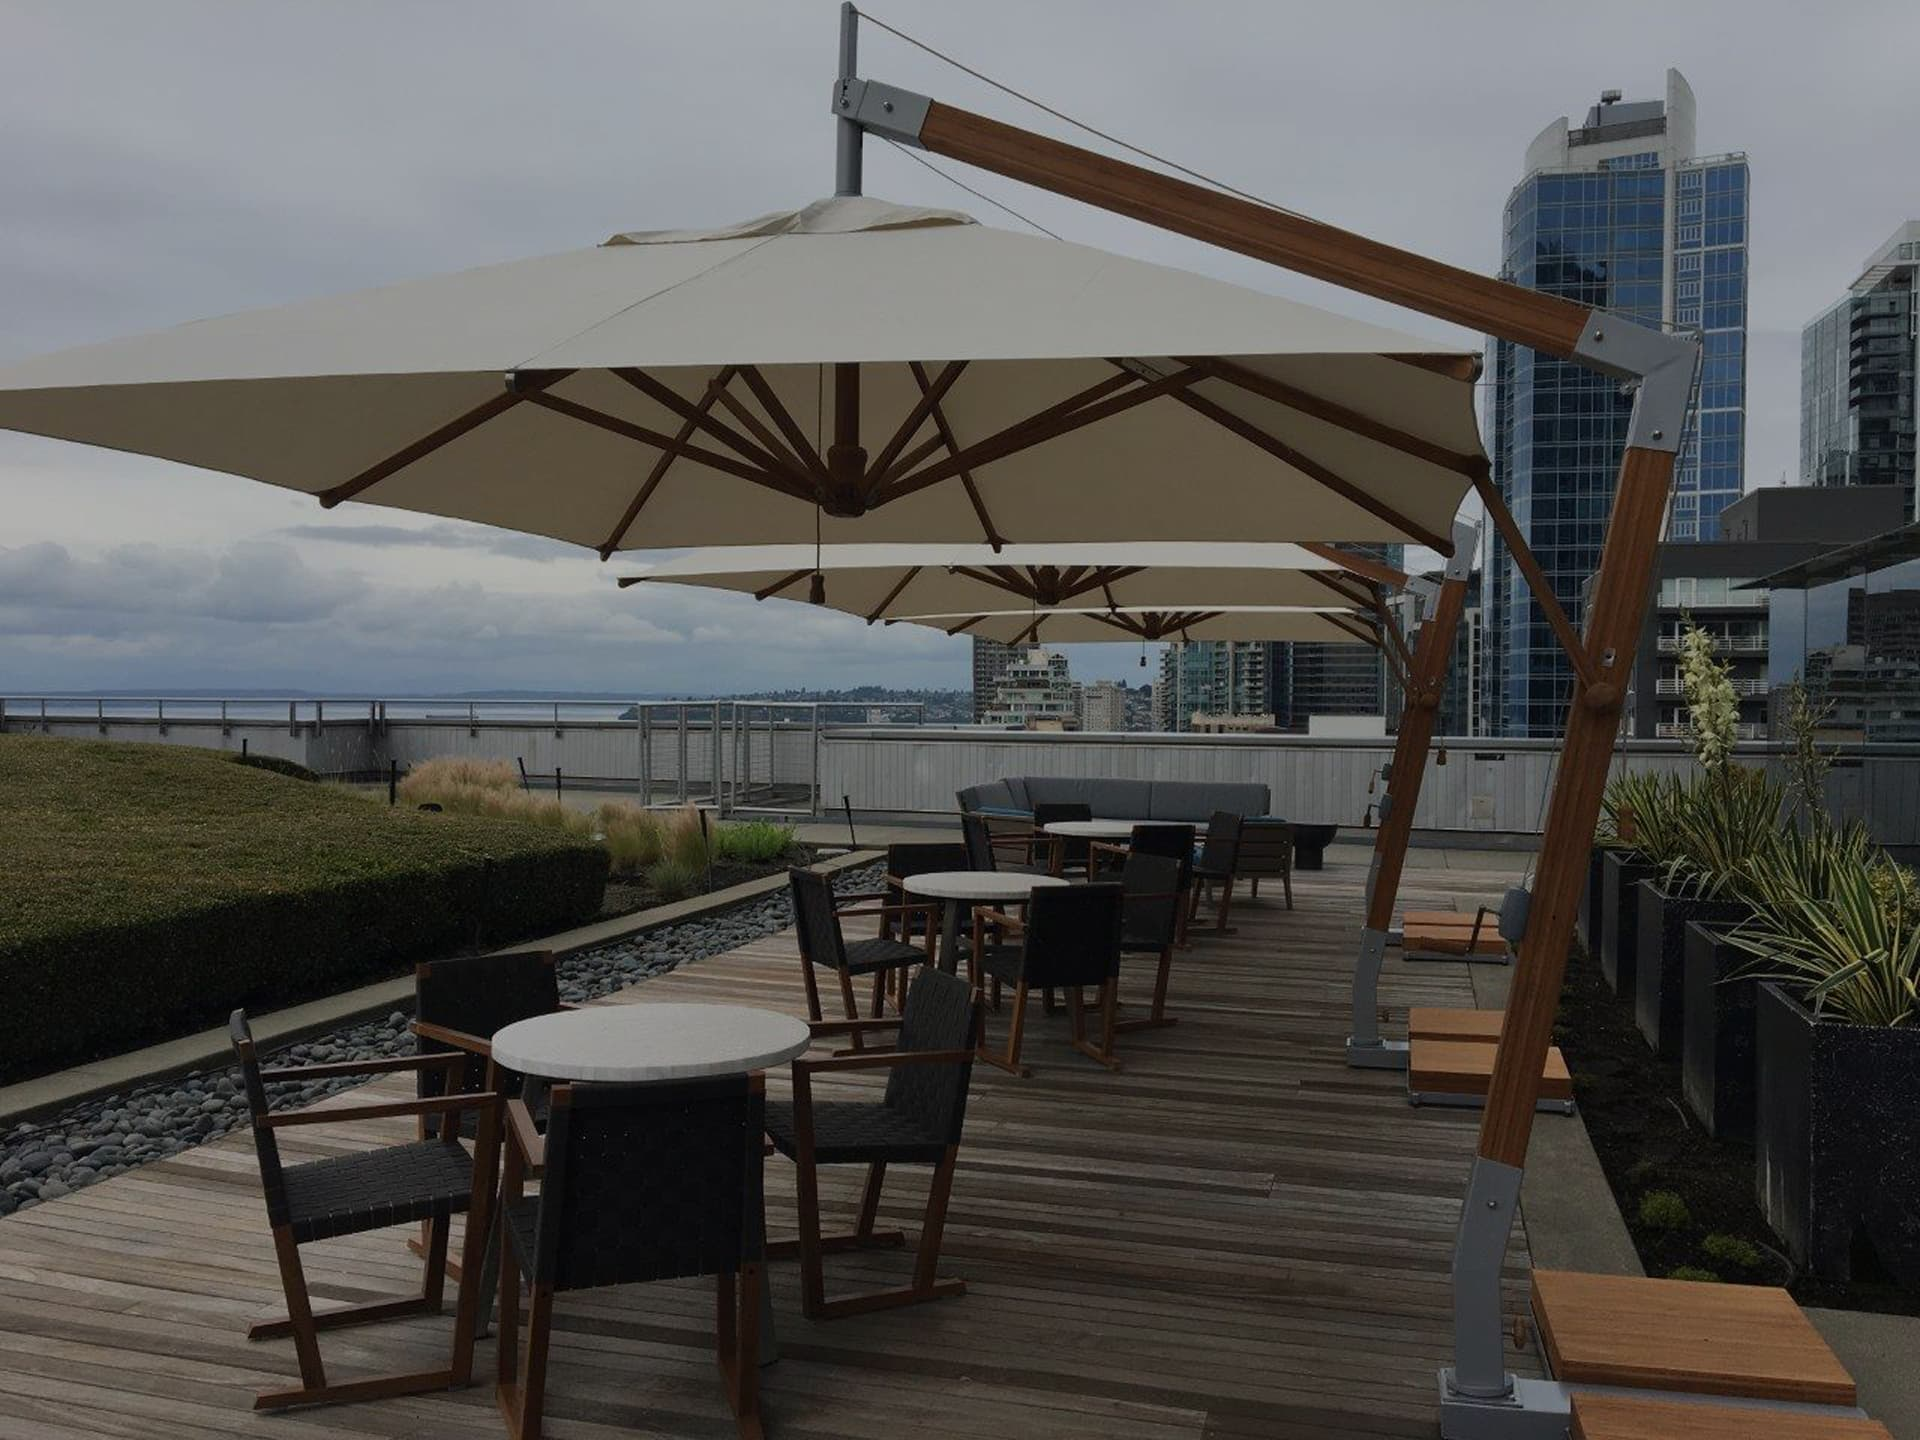 cantilever parasol for restaurant